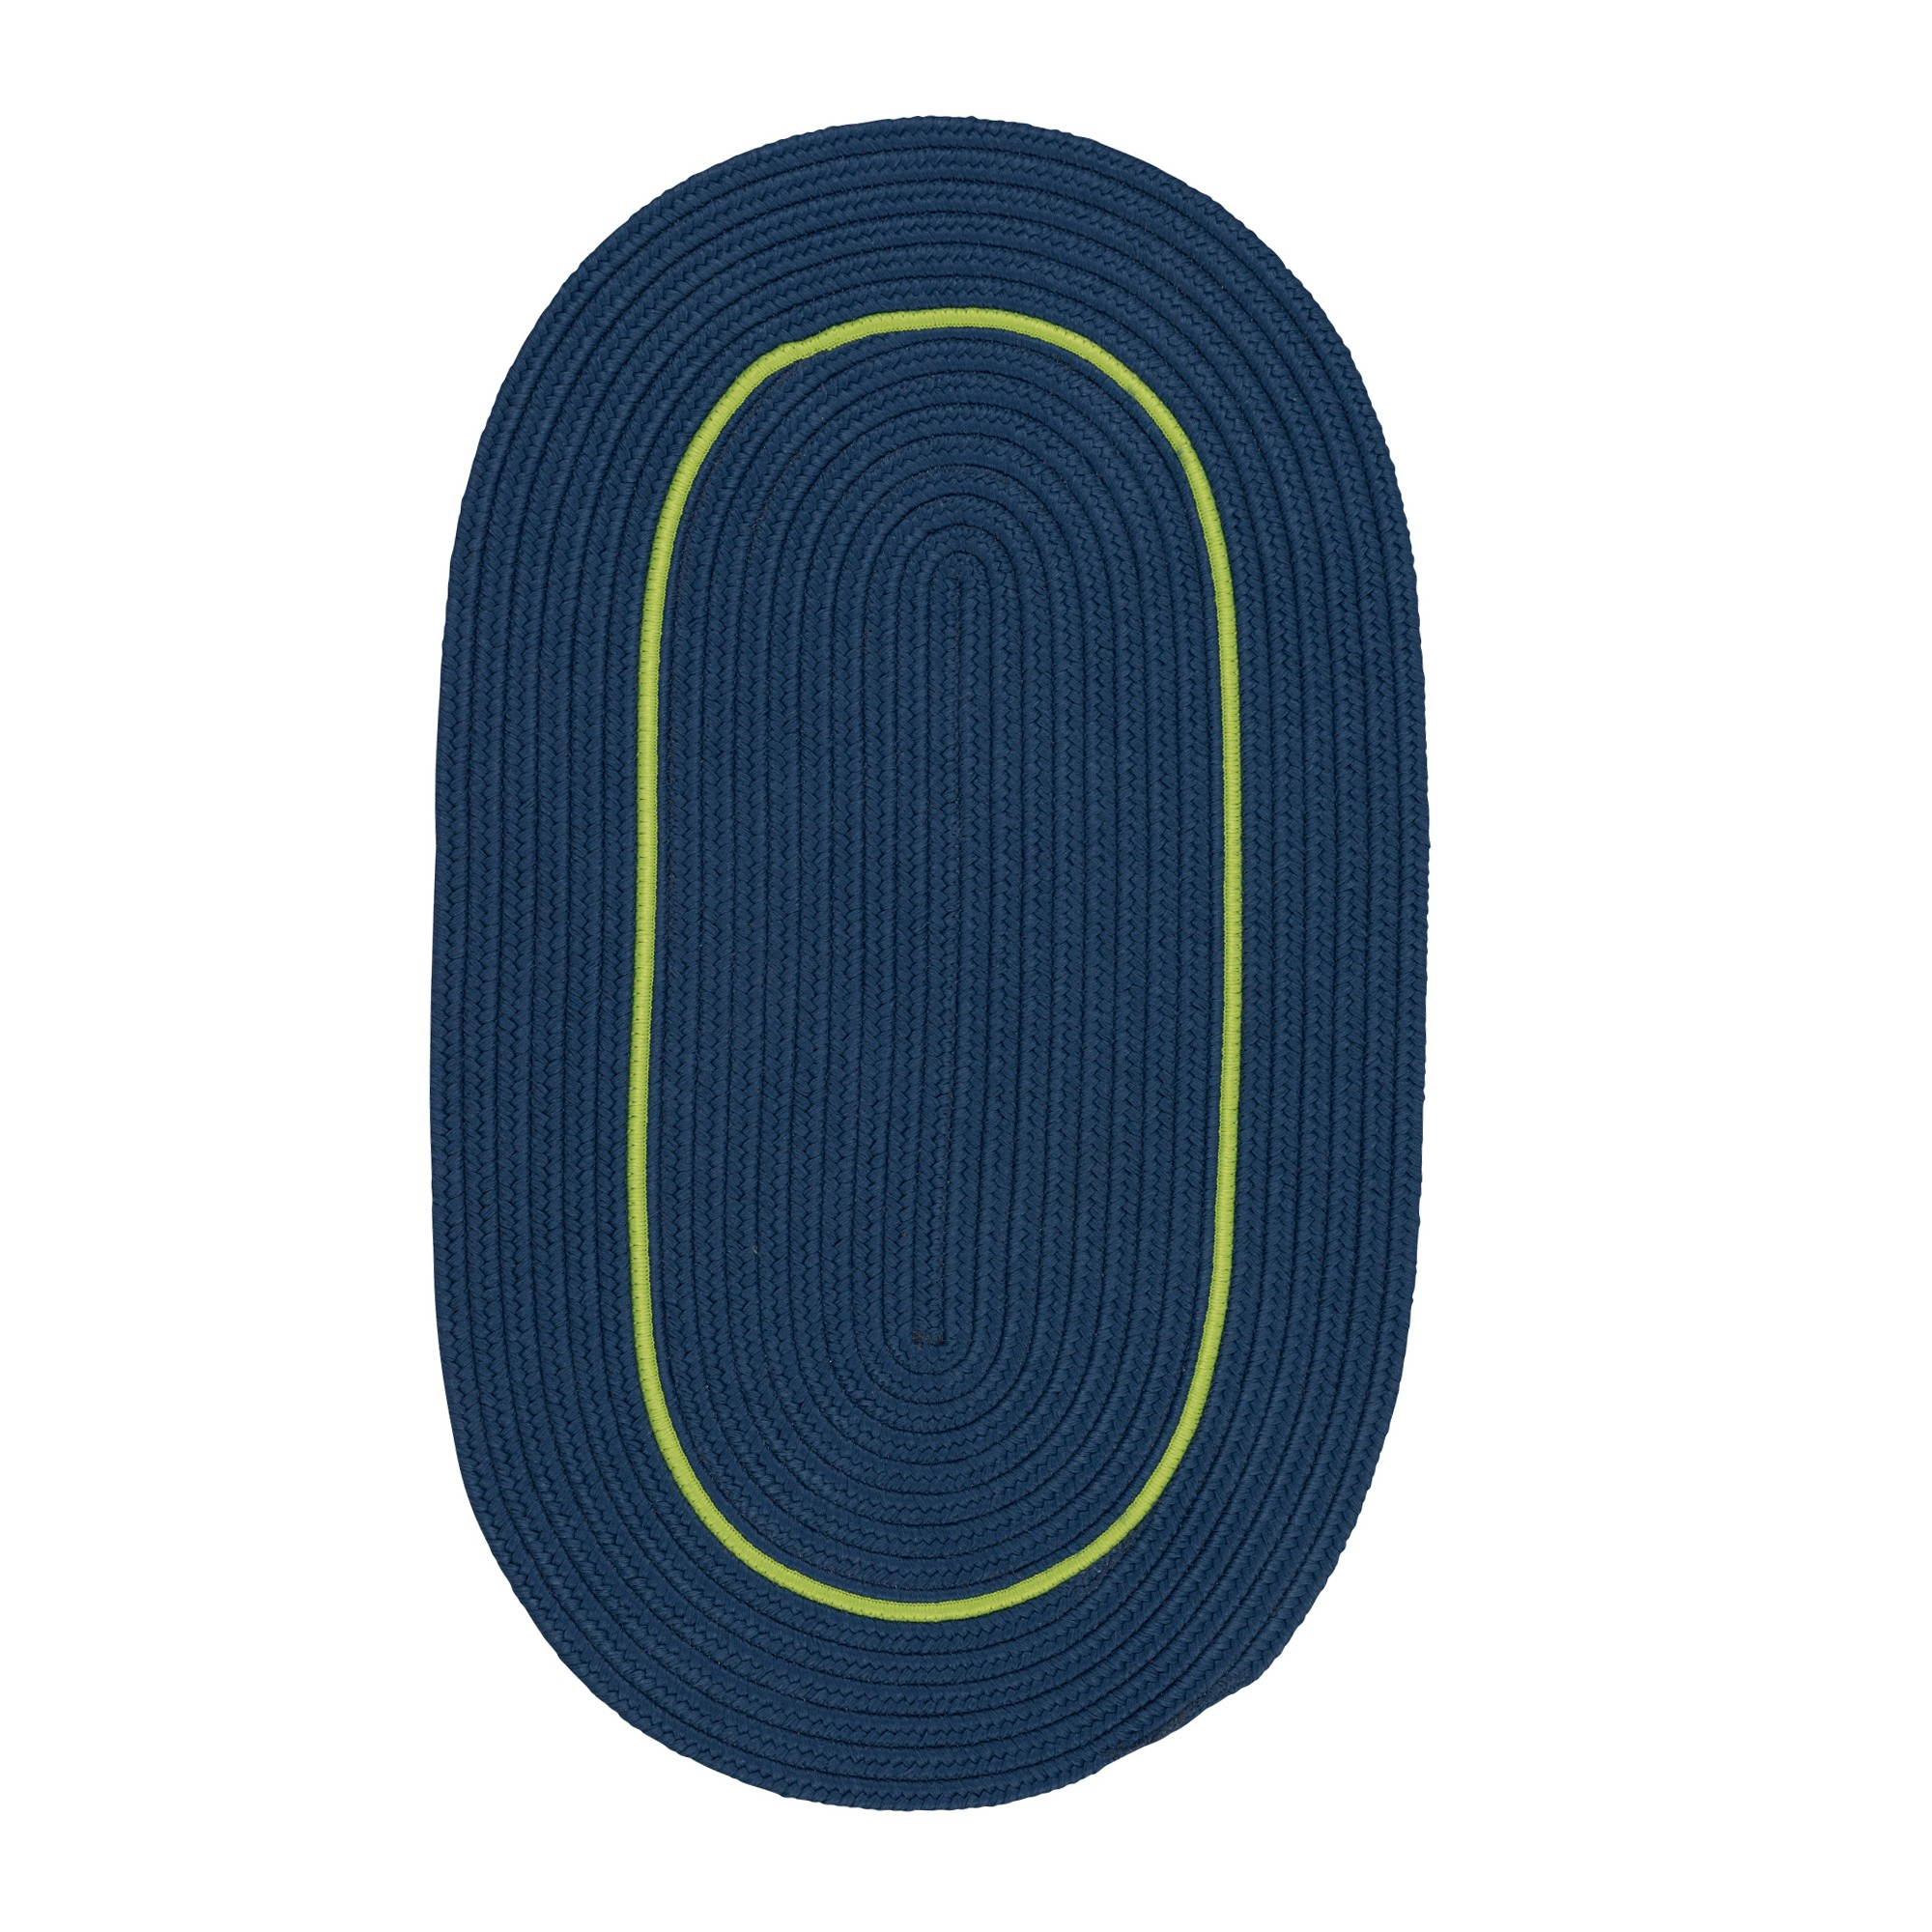 6'X9' Solid Braided Oval Area Rug Blue - Colonial Mills